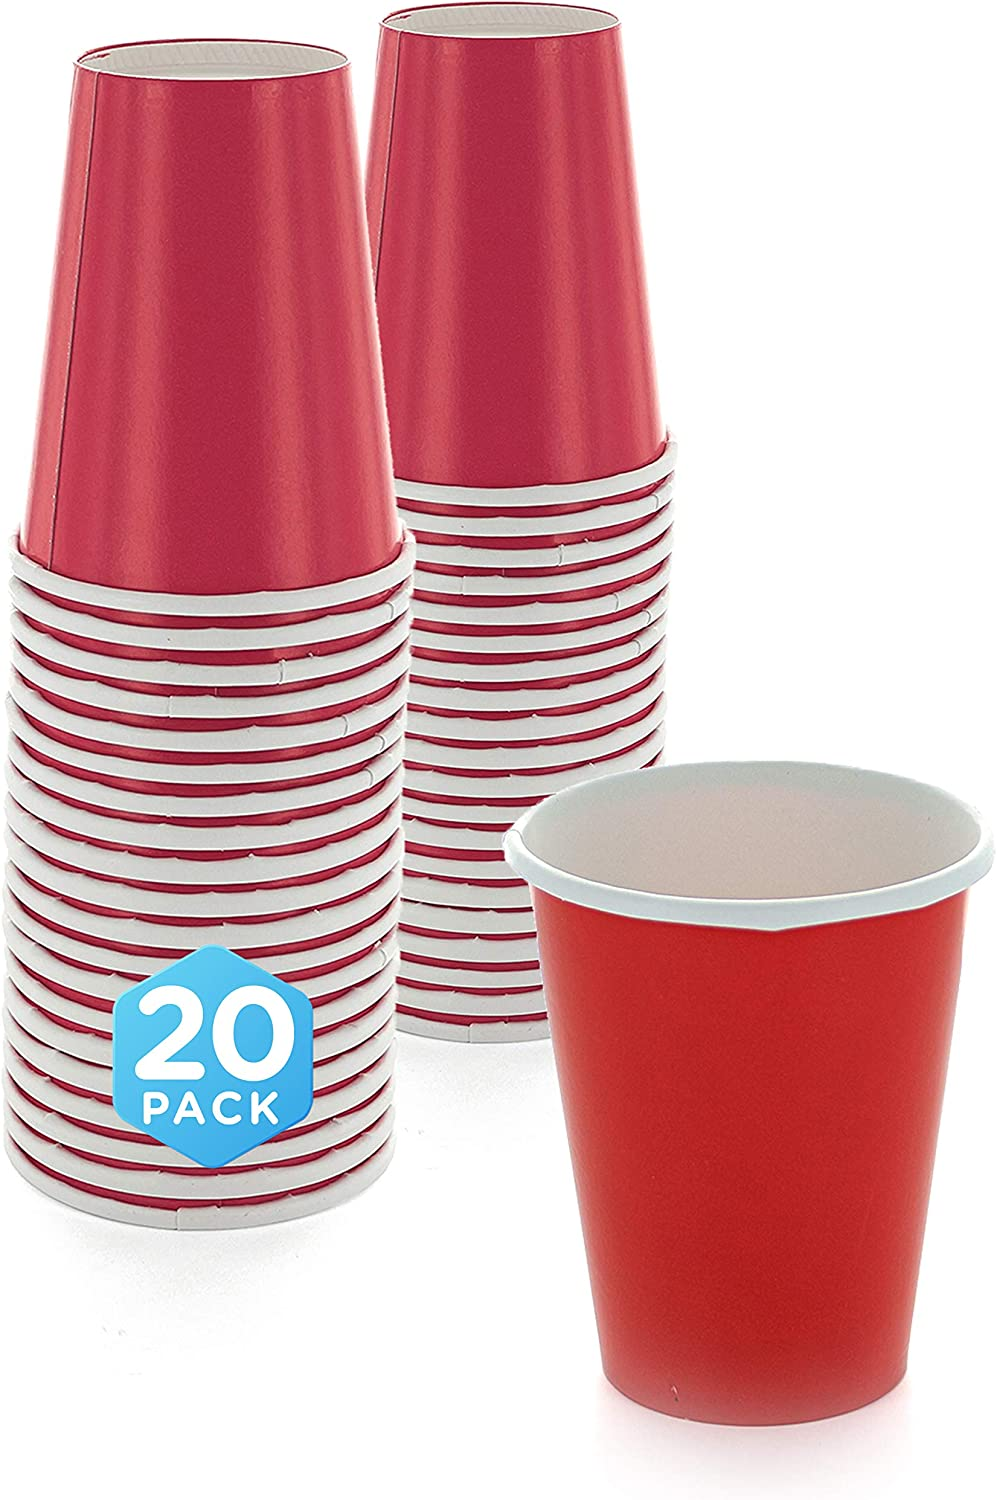 SparkSettings Disposable Paper Cups Drinking Paper Cup for Both Hot and Cold Beverages Perfect for Coffee, Tea, Water or Juice - Apple Red, Pack of 20